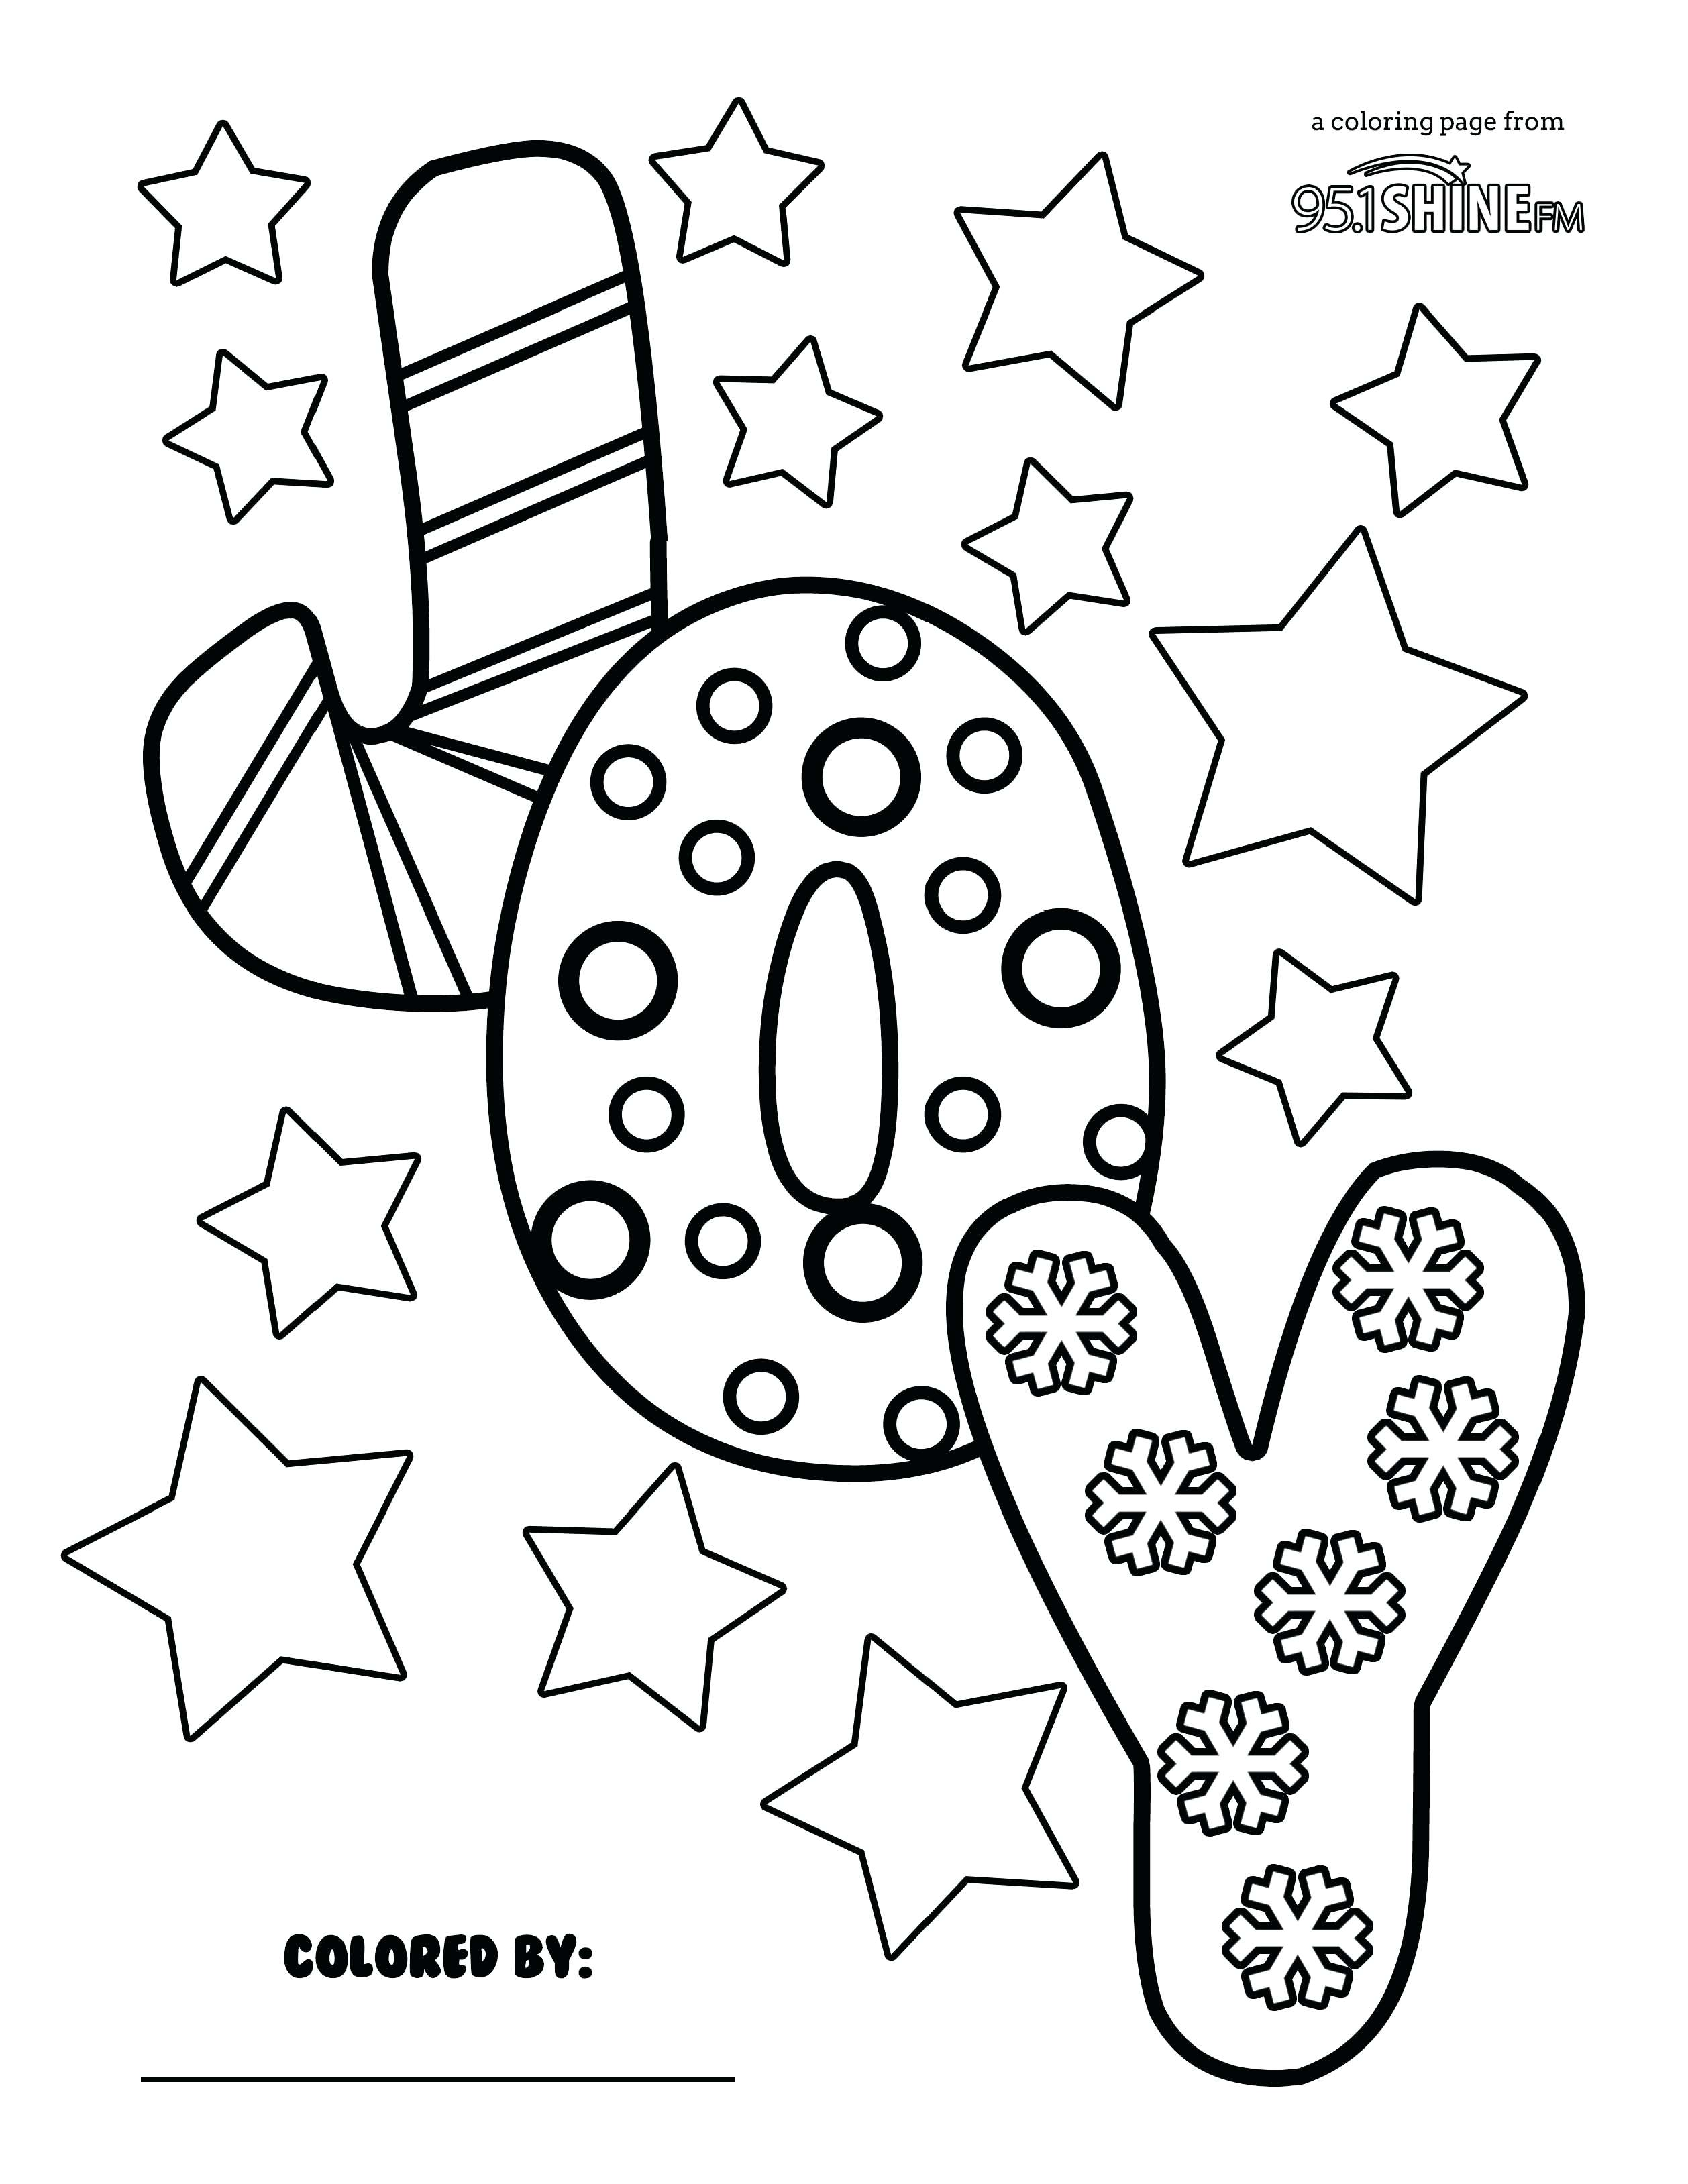 Joy inside out drawing at getdrawings free for personal use 2516x3256 joy coloring page publicscrutiny Images